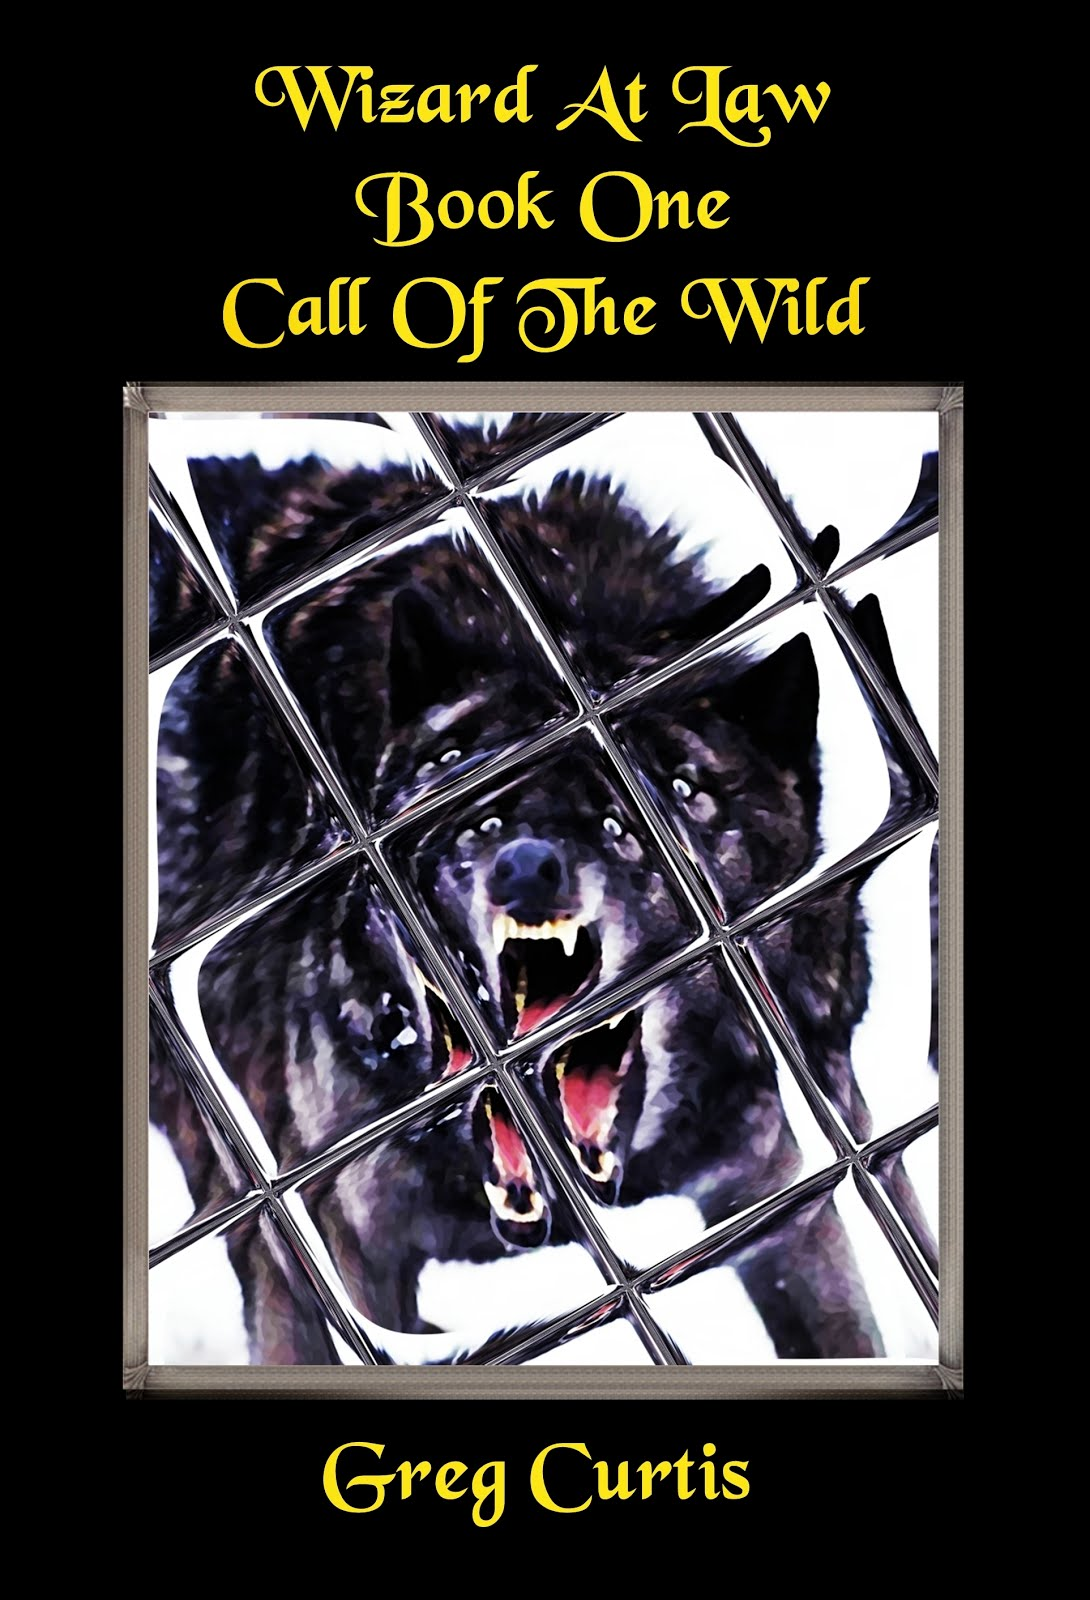 Wizard At Law: Call Of The Wild